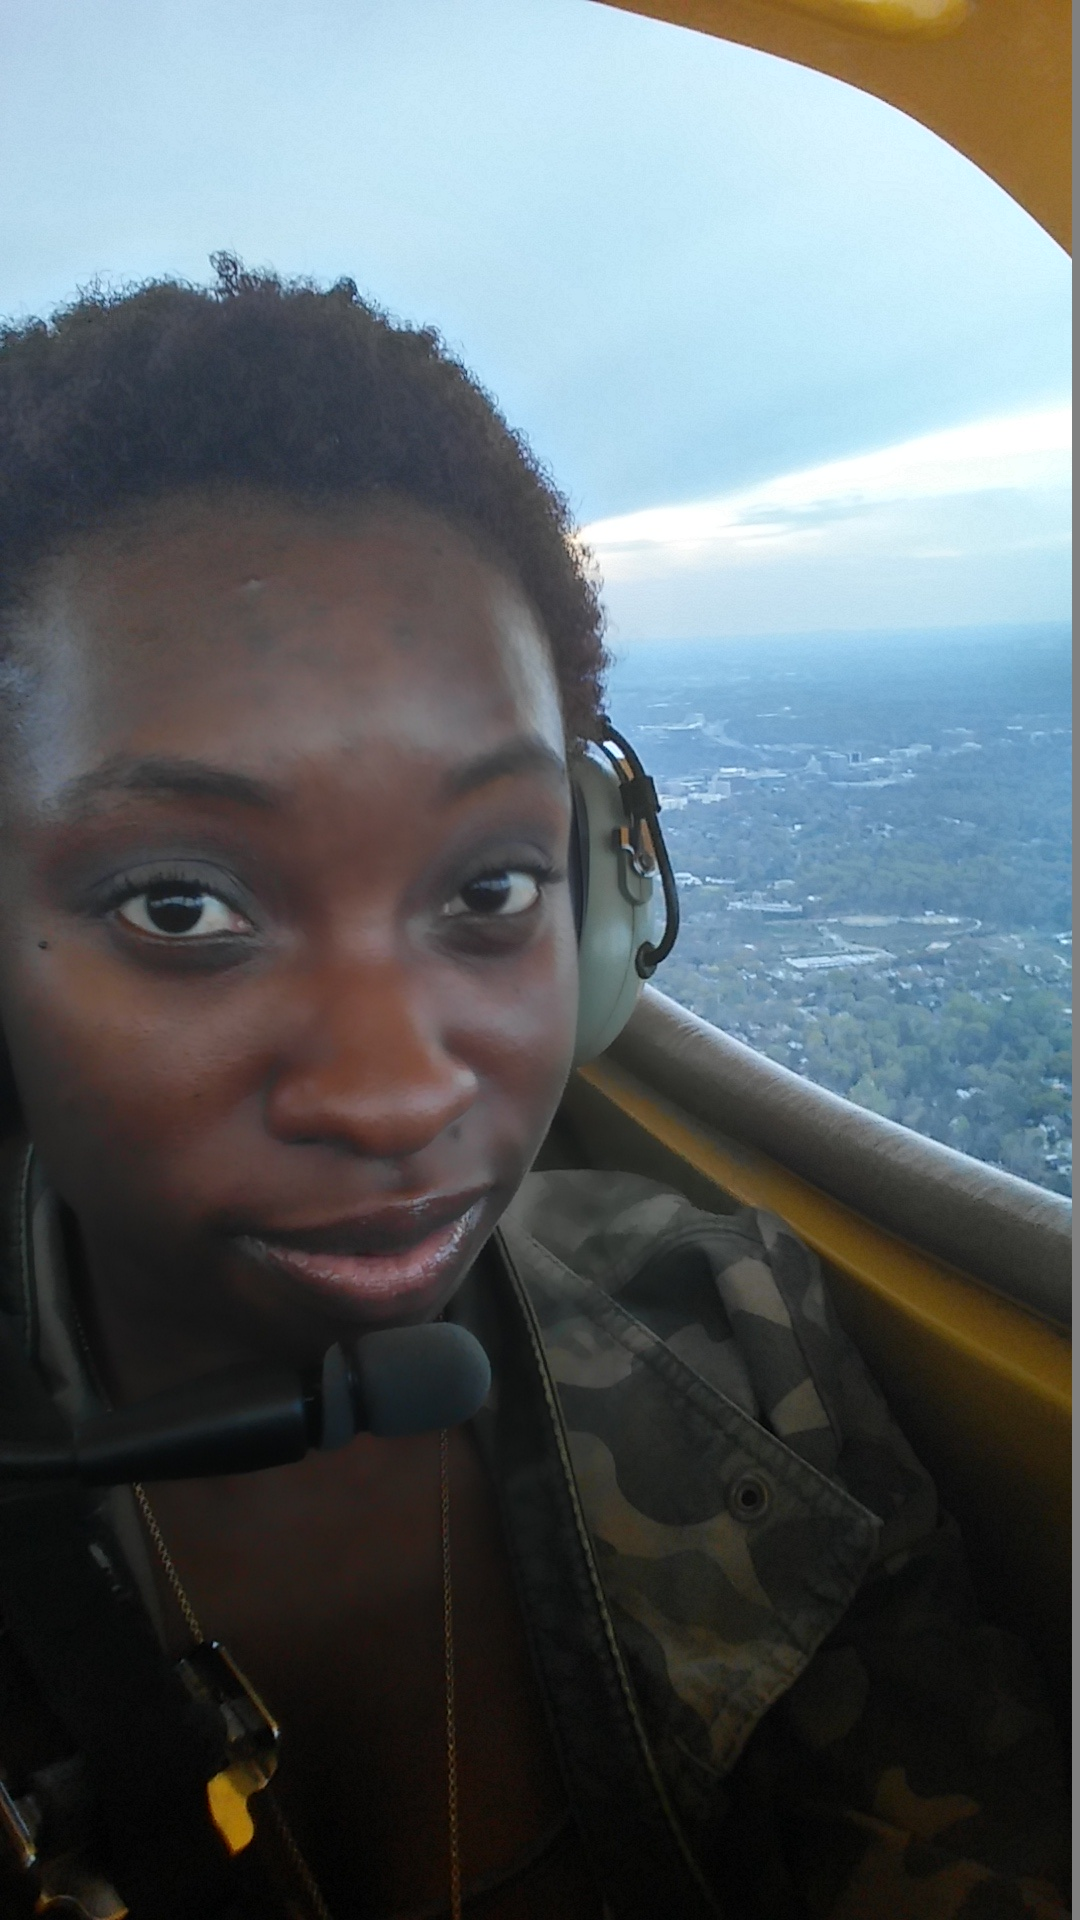 This is 25 (I took a biplane ride around Atlanta on my 25th birthday)